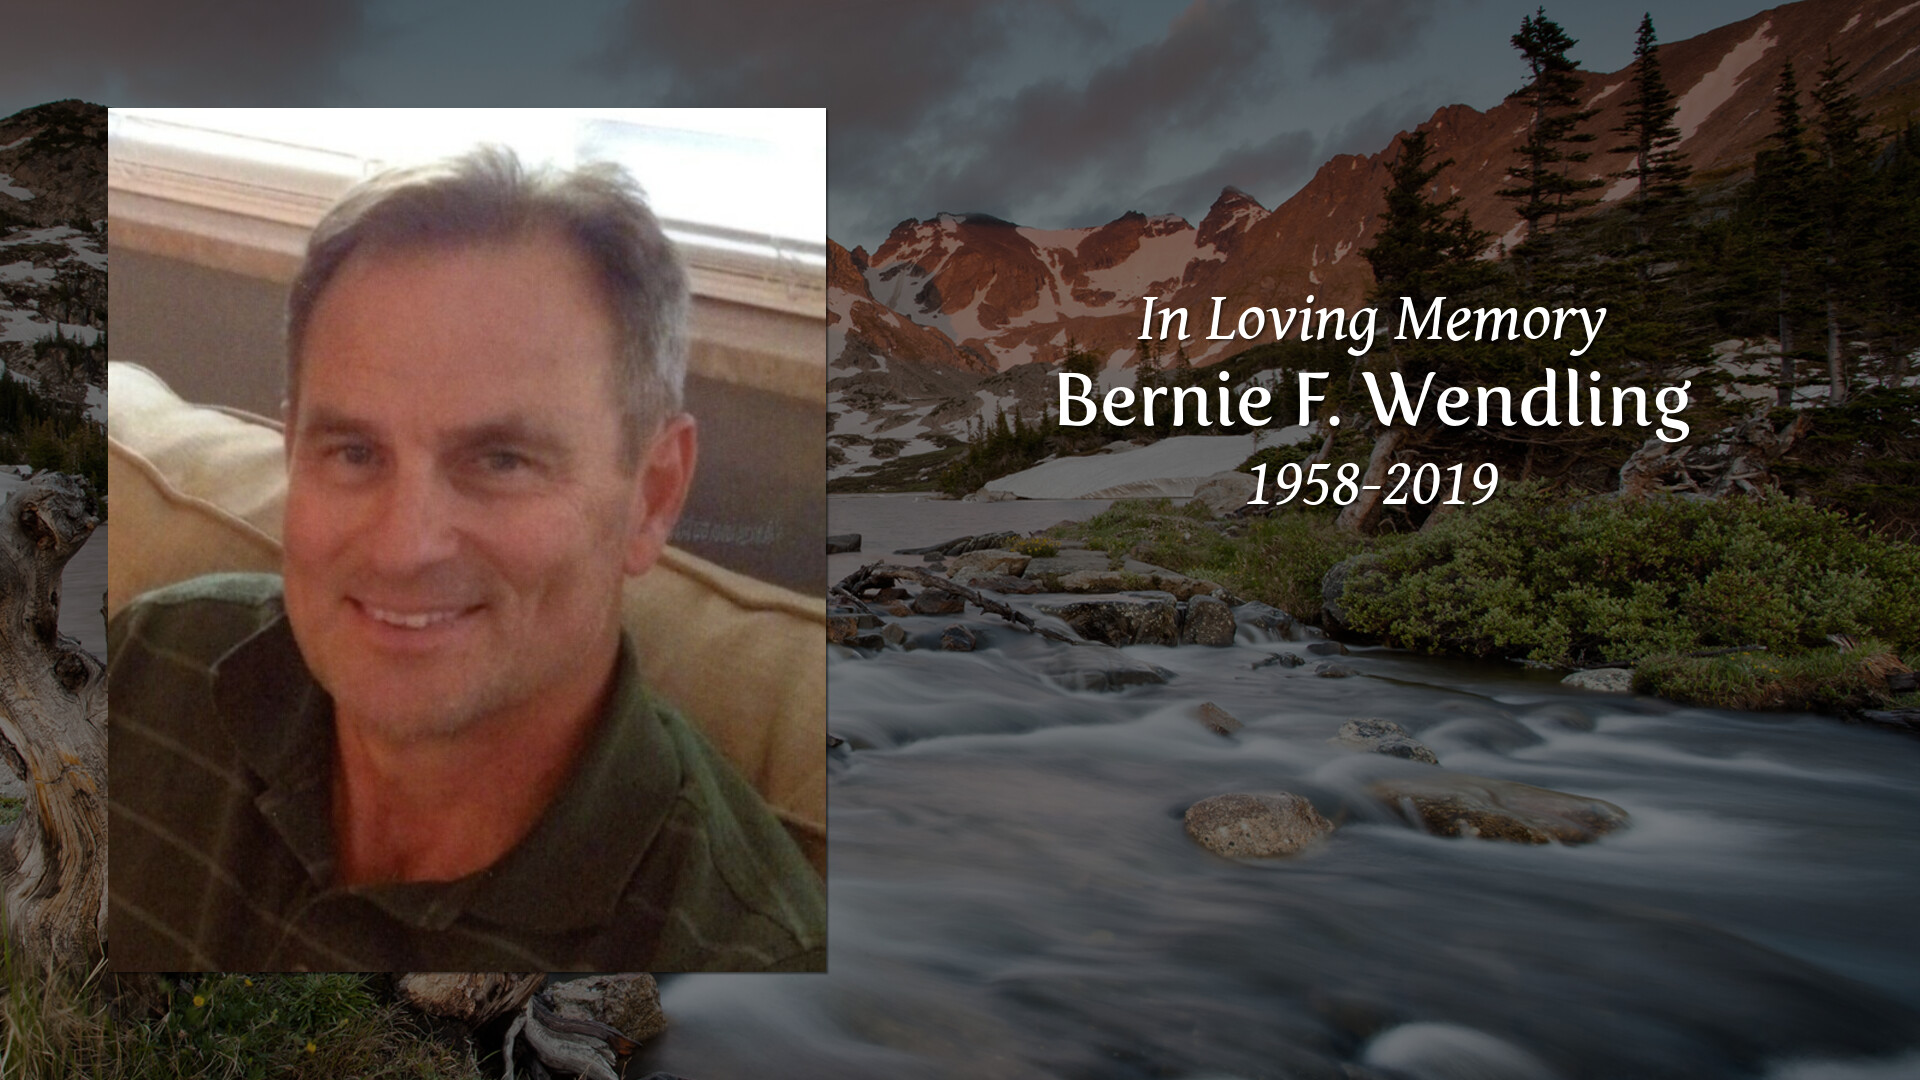 Newcomer Family Obituaries - Bernie F  Wendling 1958 - 2019